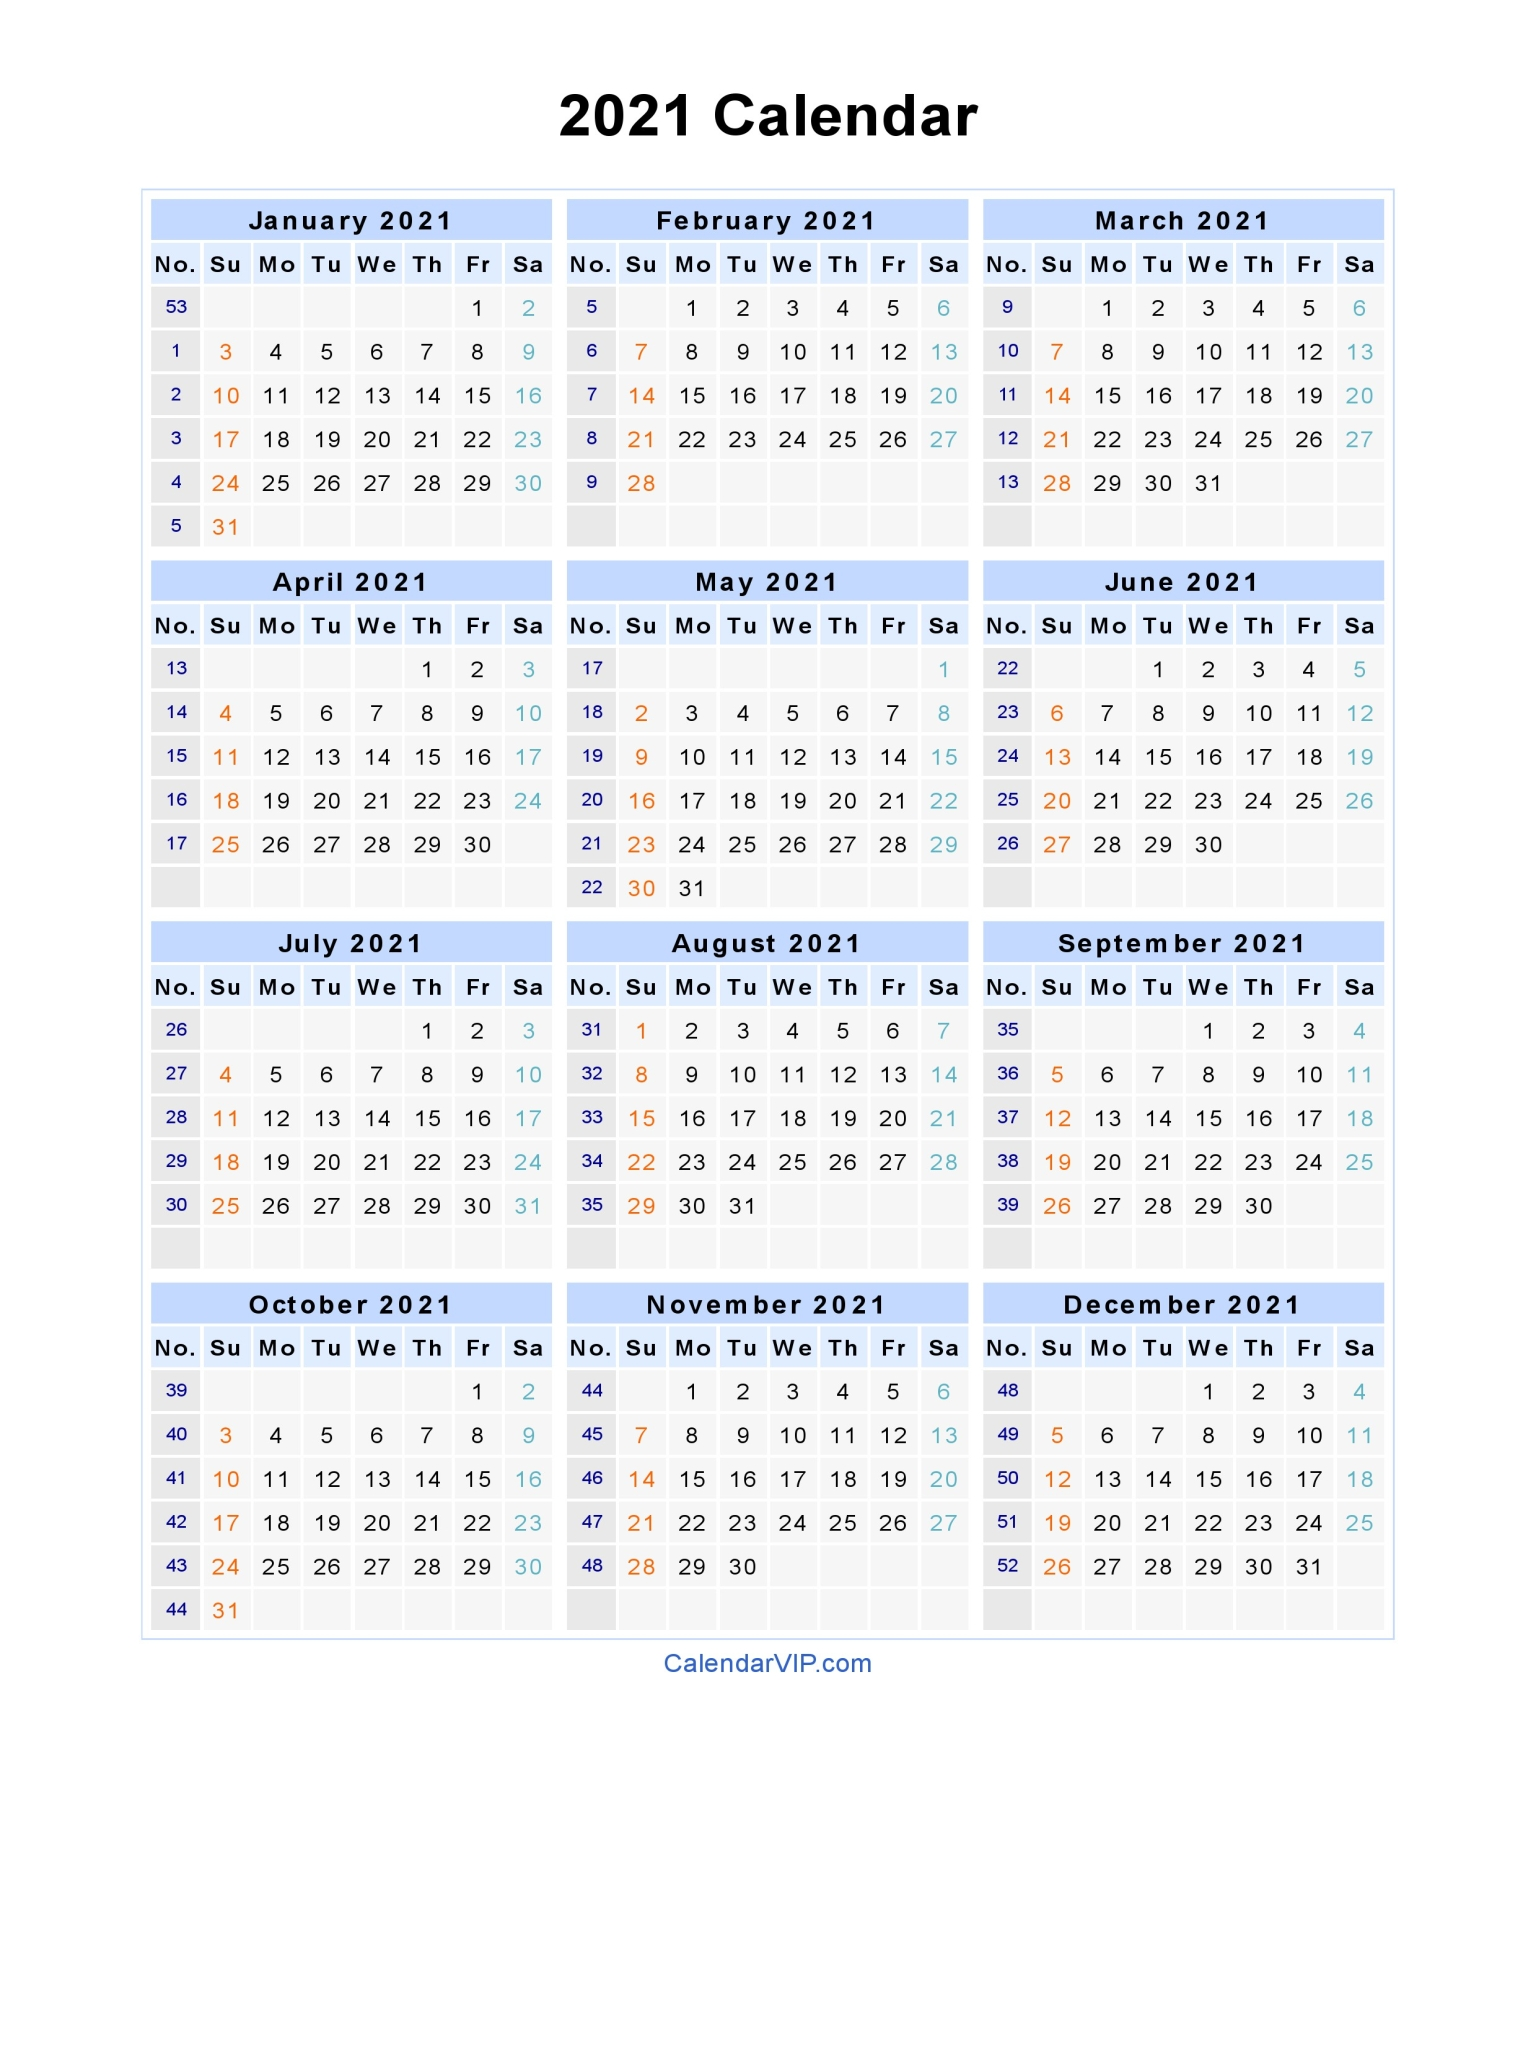 After all, it's just another way to show some excitement for the end of 2020. 2021 Calendar - Blank Printable Calendar Template in PDF ...